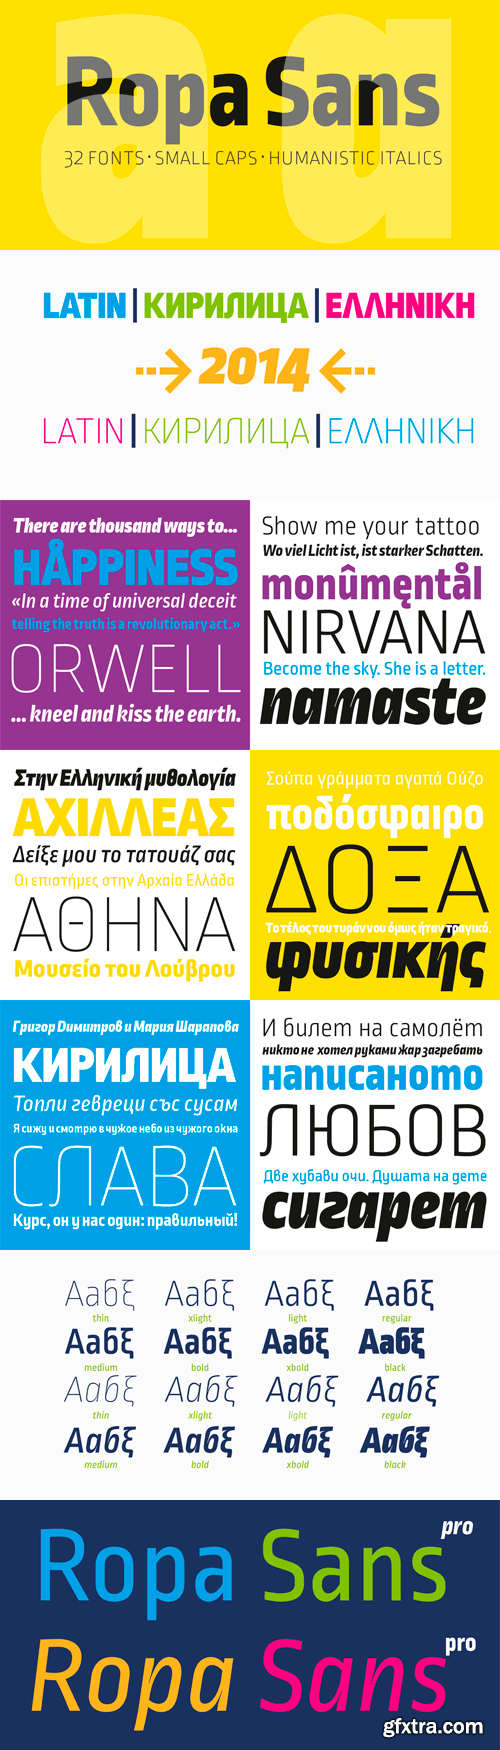 Ropa Sans Pro Font Family - 32 Fonts for $300